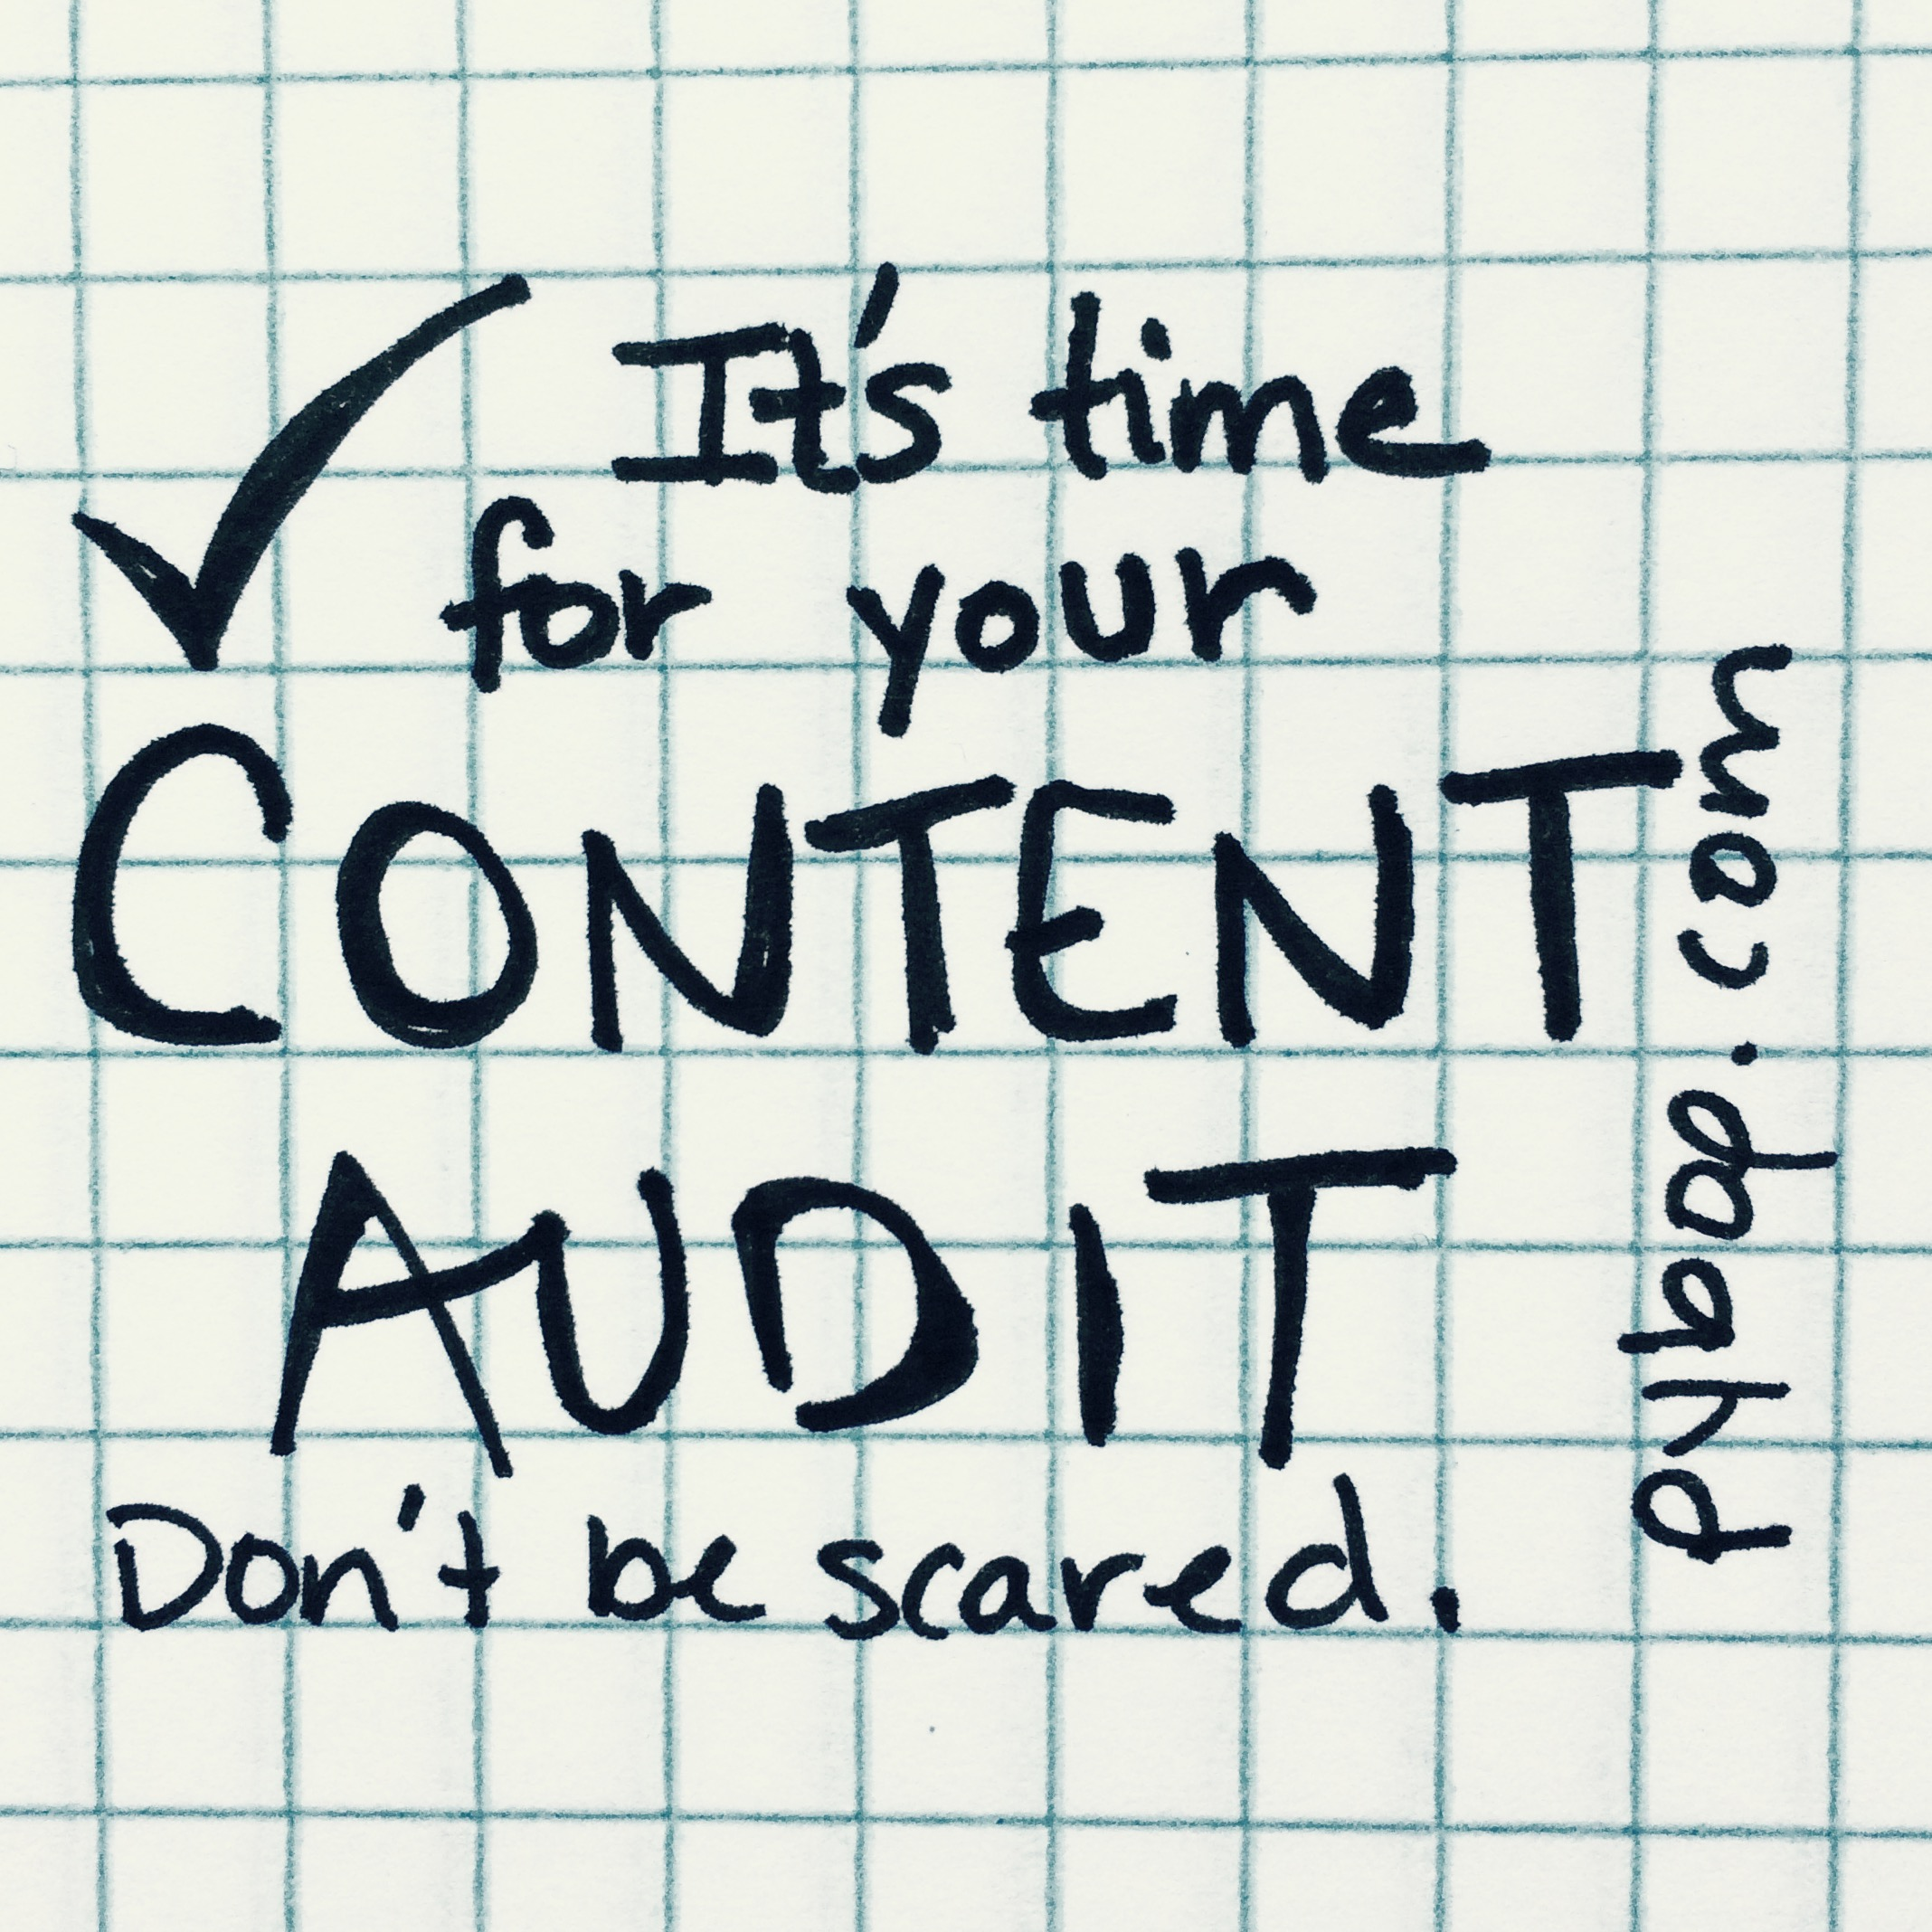 What are the benefits of a content audit?